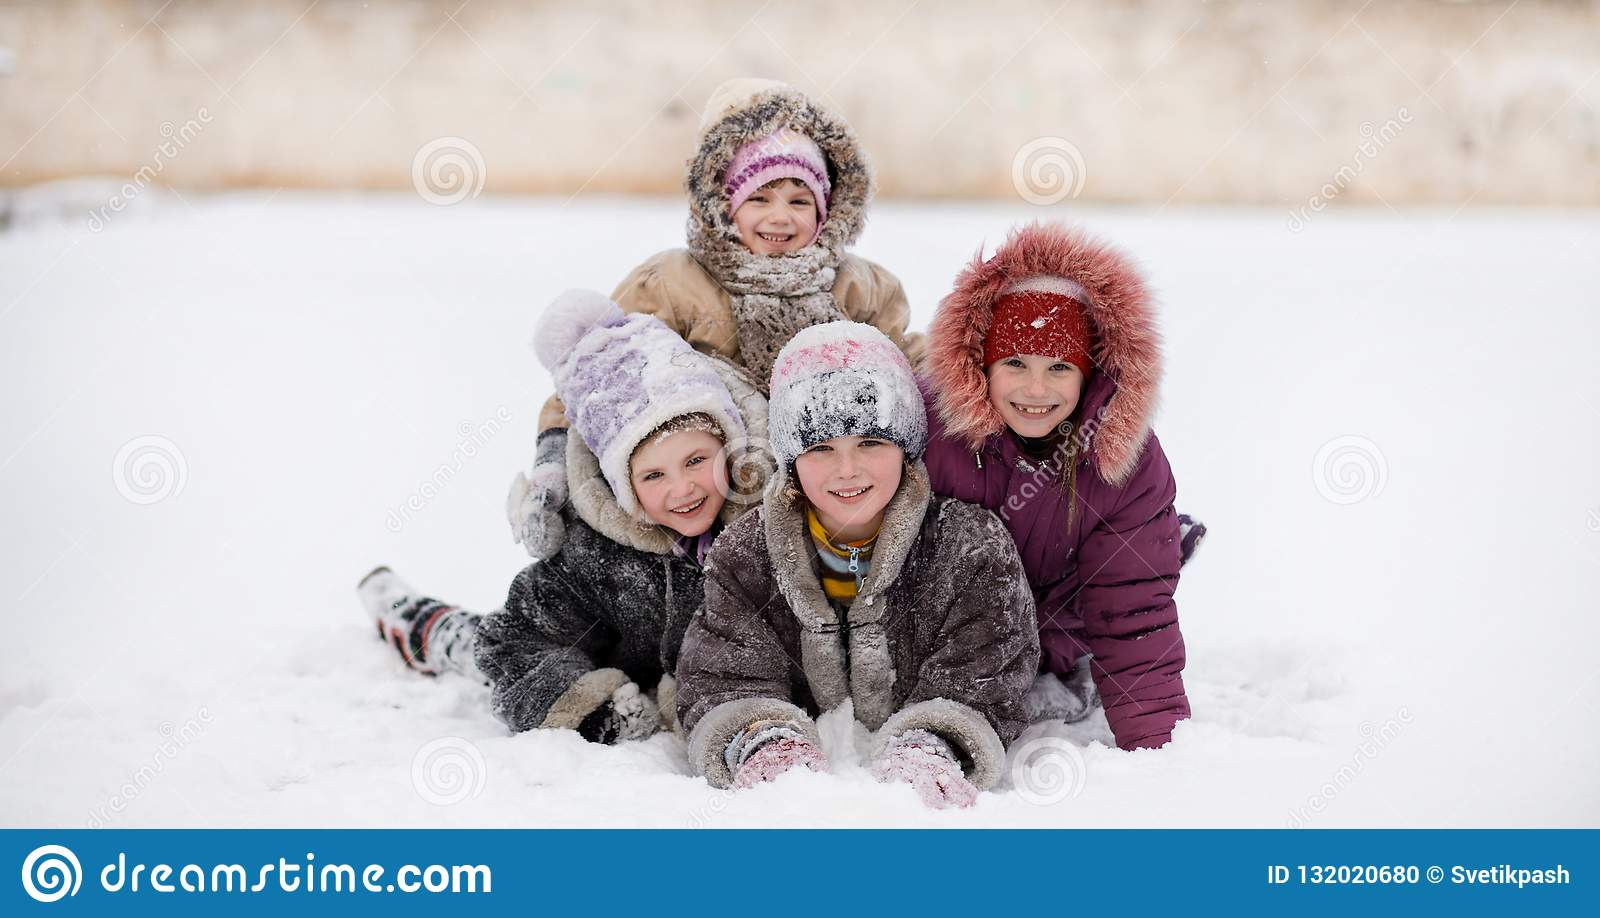 Funny children playing and laughing on snowy winter park